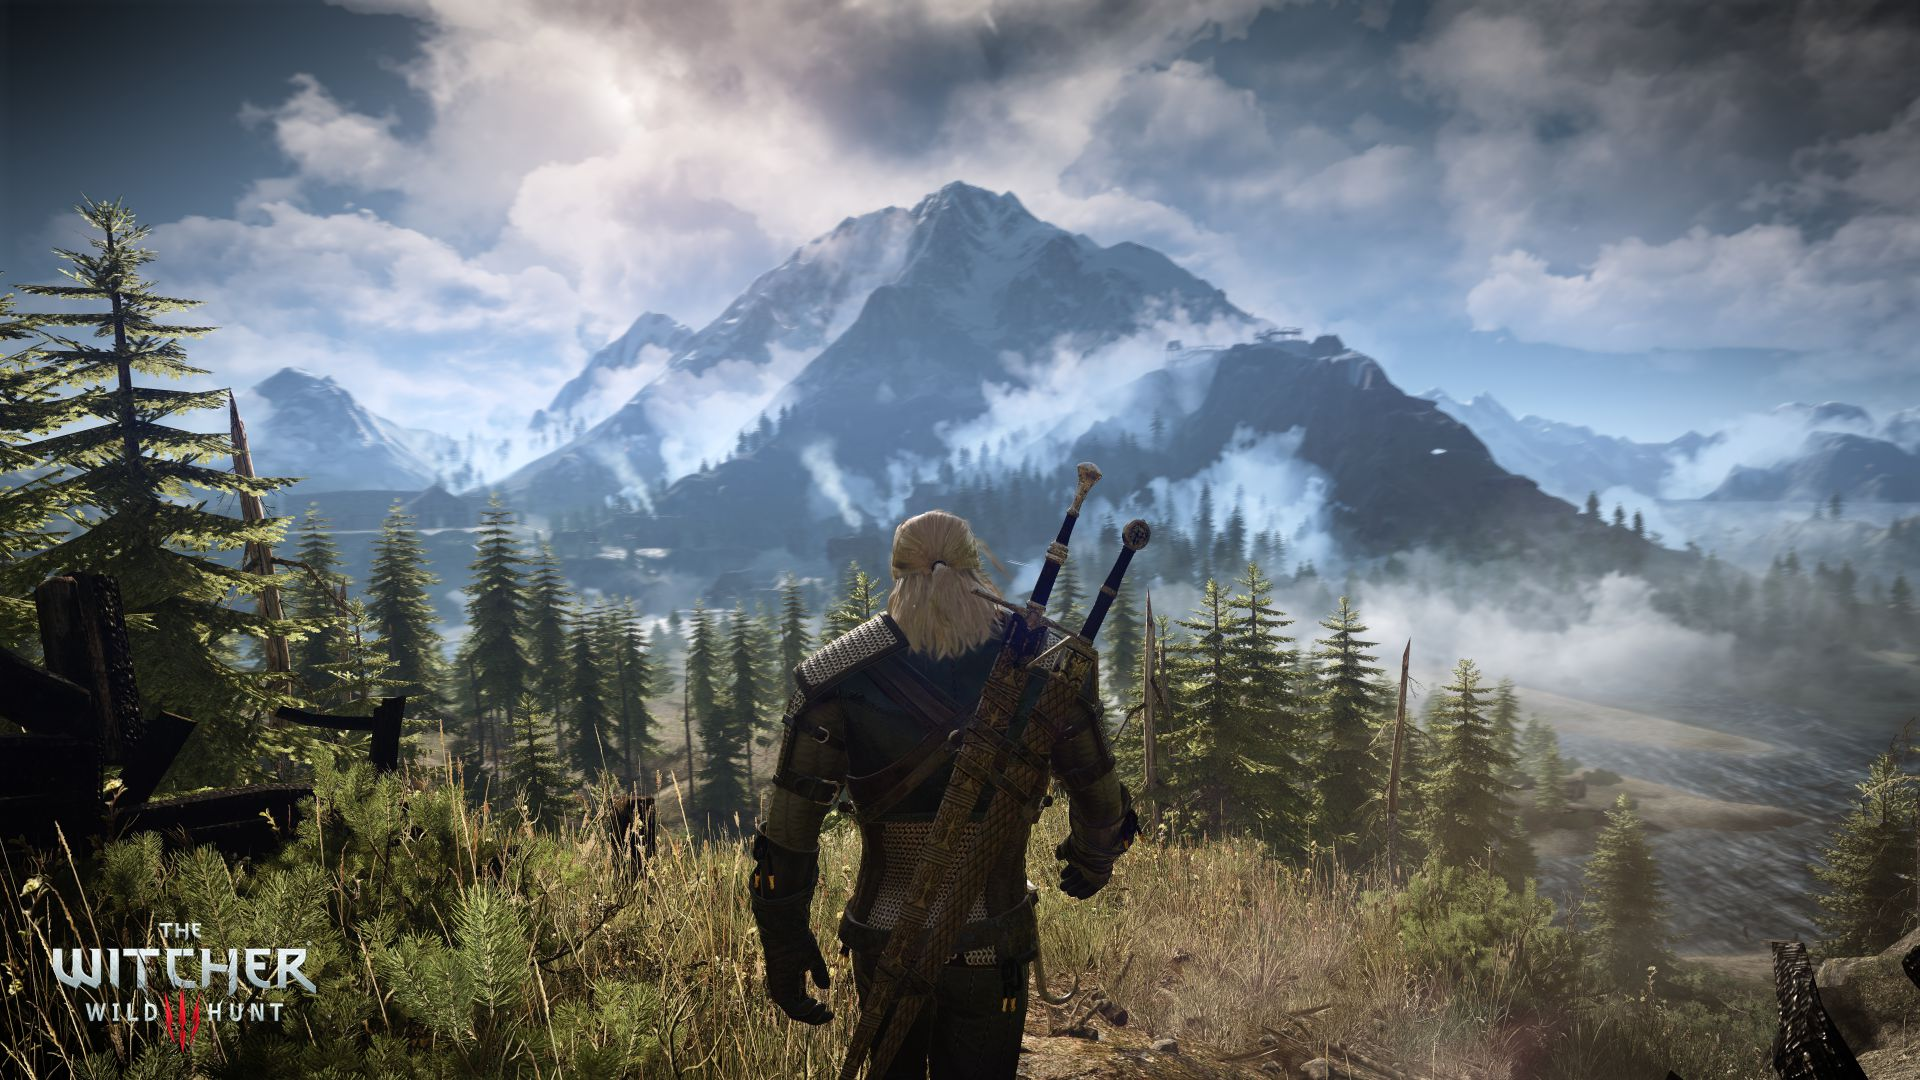 the_witcher_3_wild_hunt_the_world_of_the_witcher_3_just_begs_to_be_explored_1402422288